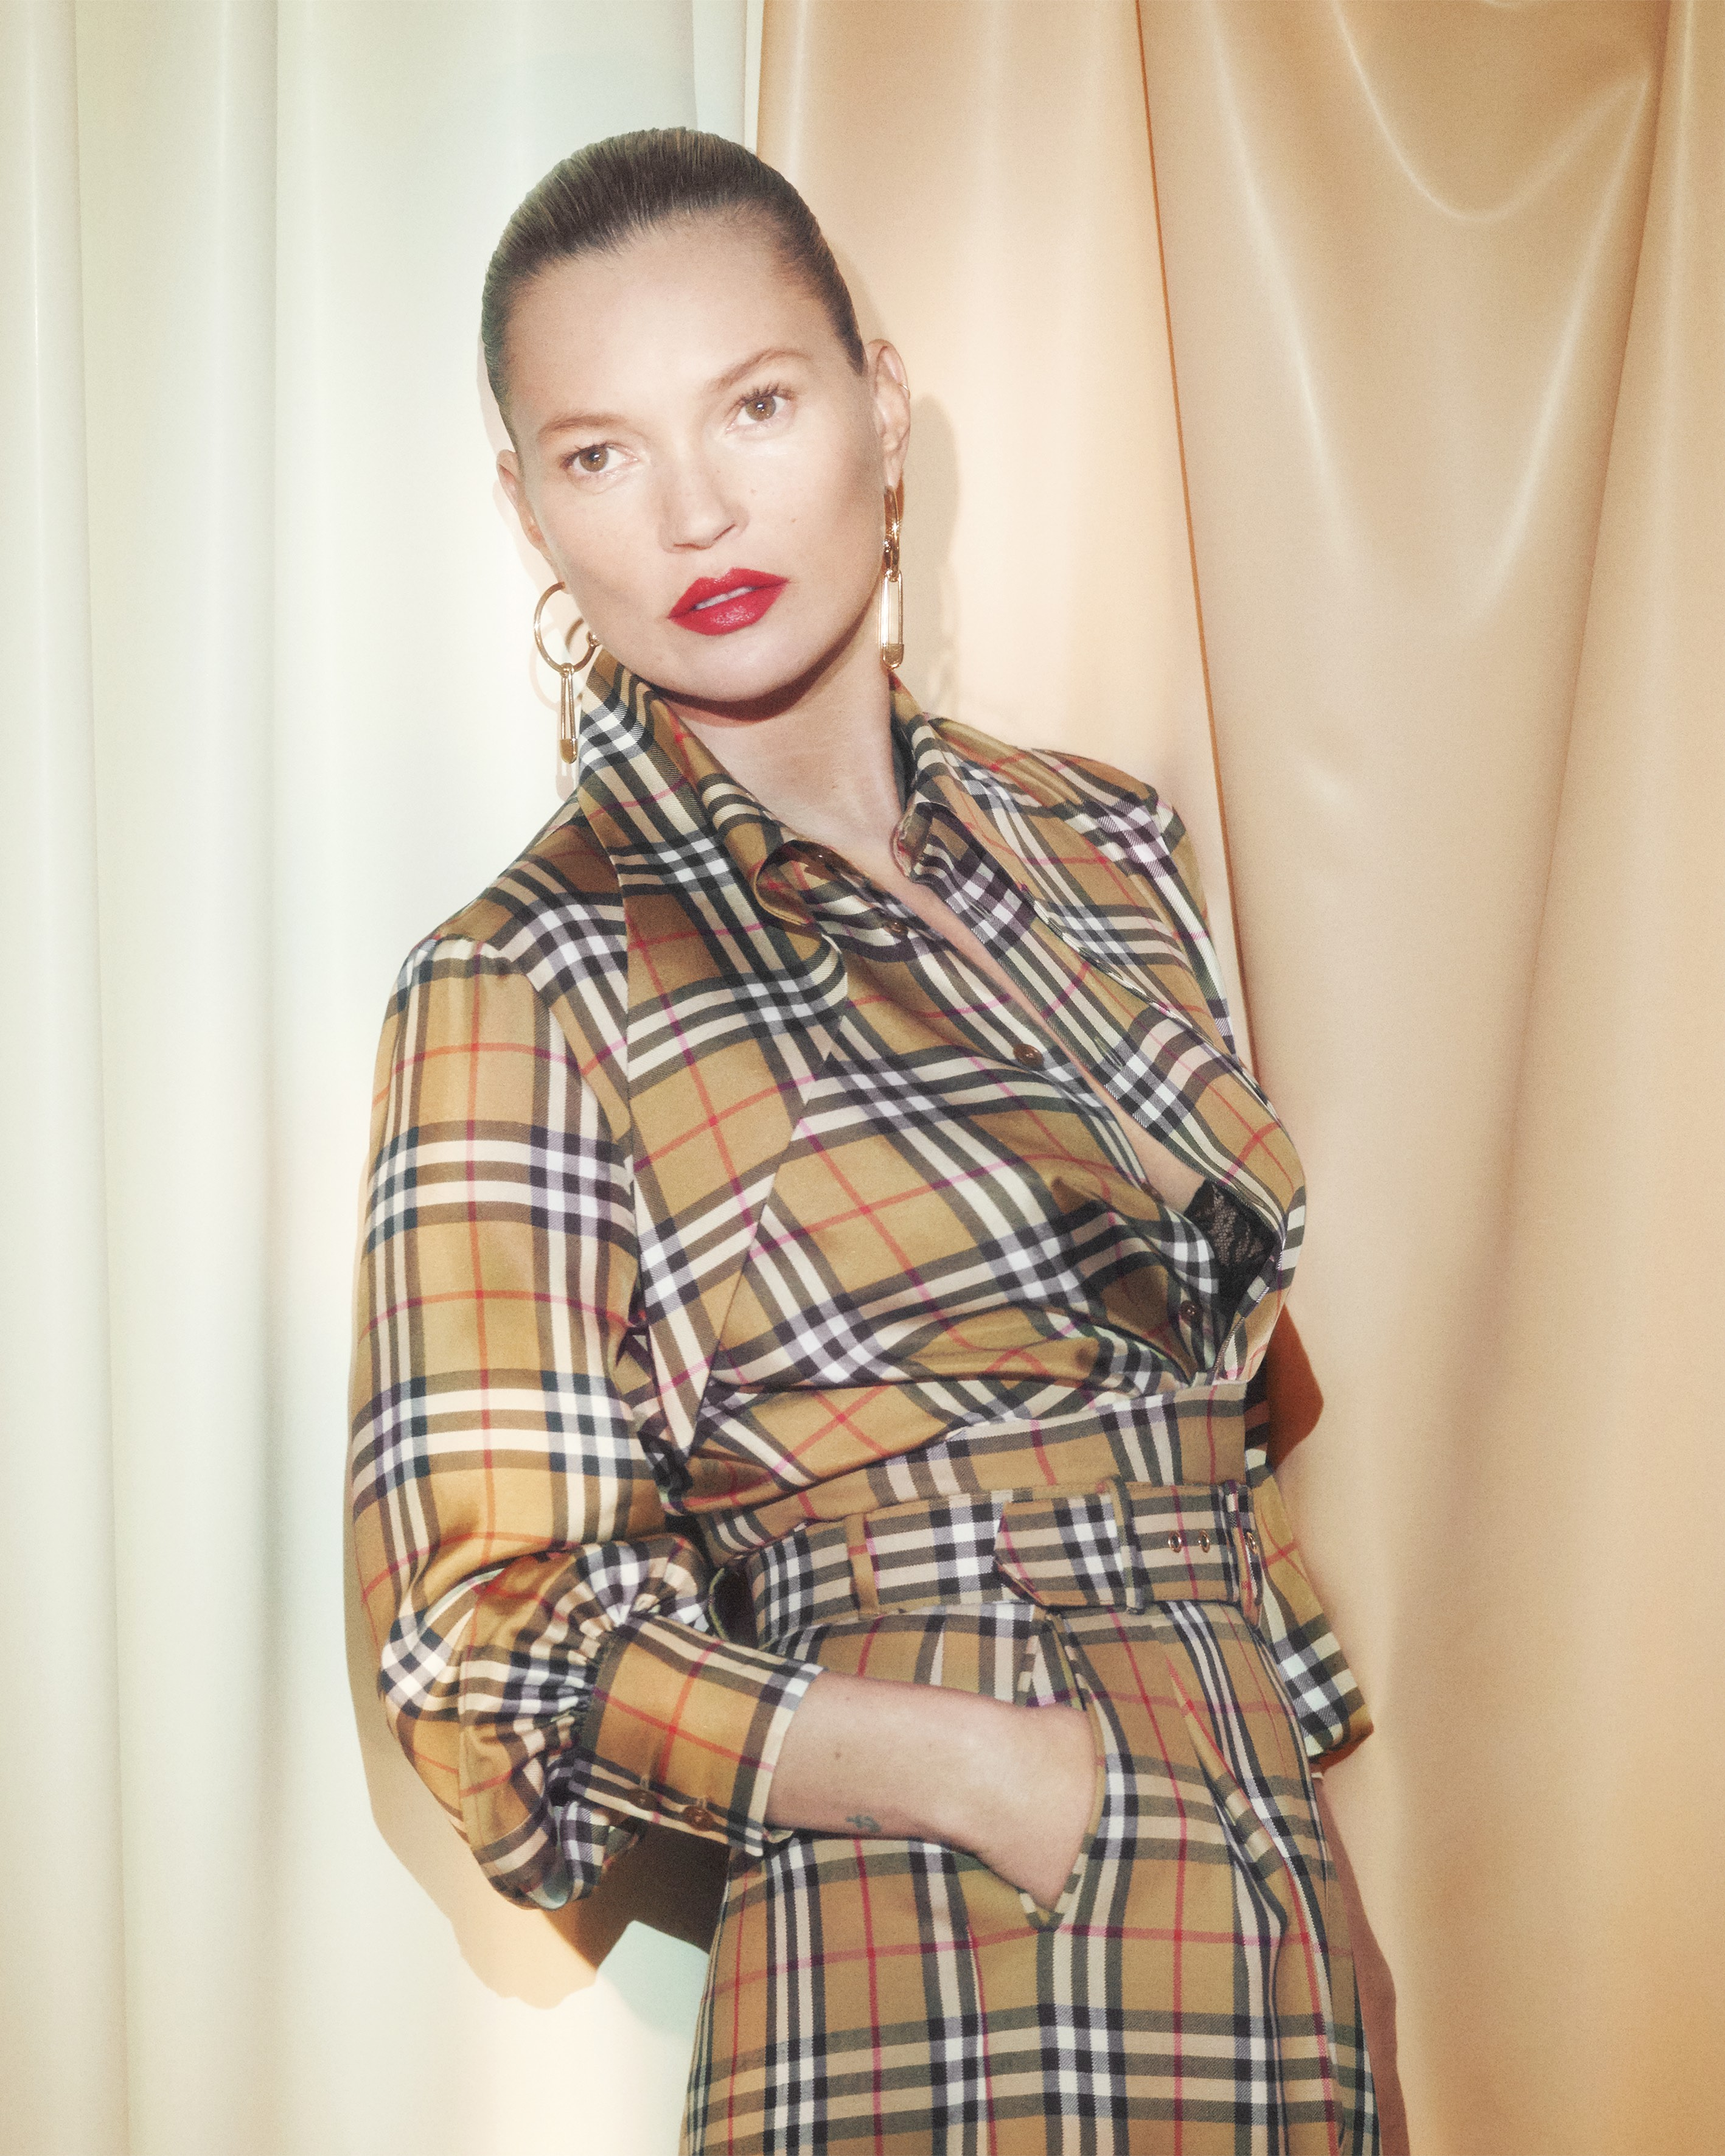 KATE MOSS FRONT'S CAMPAIGN FOR THE VIVIENNE WESTWOOD X BURBERRY COLLABORATION